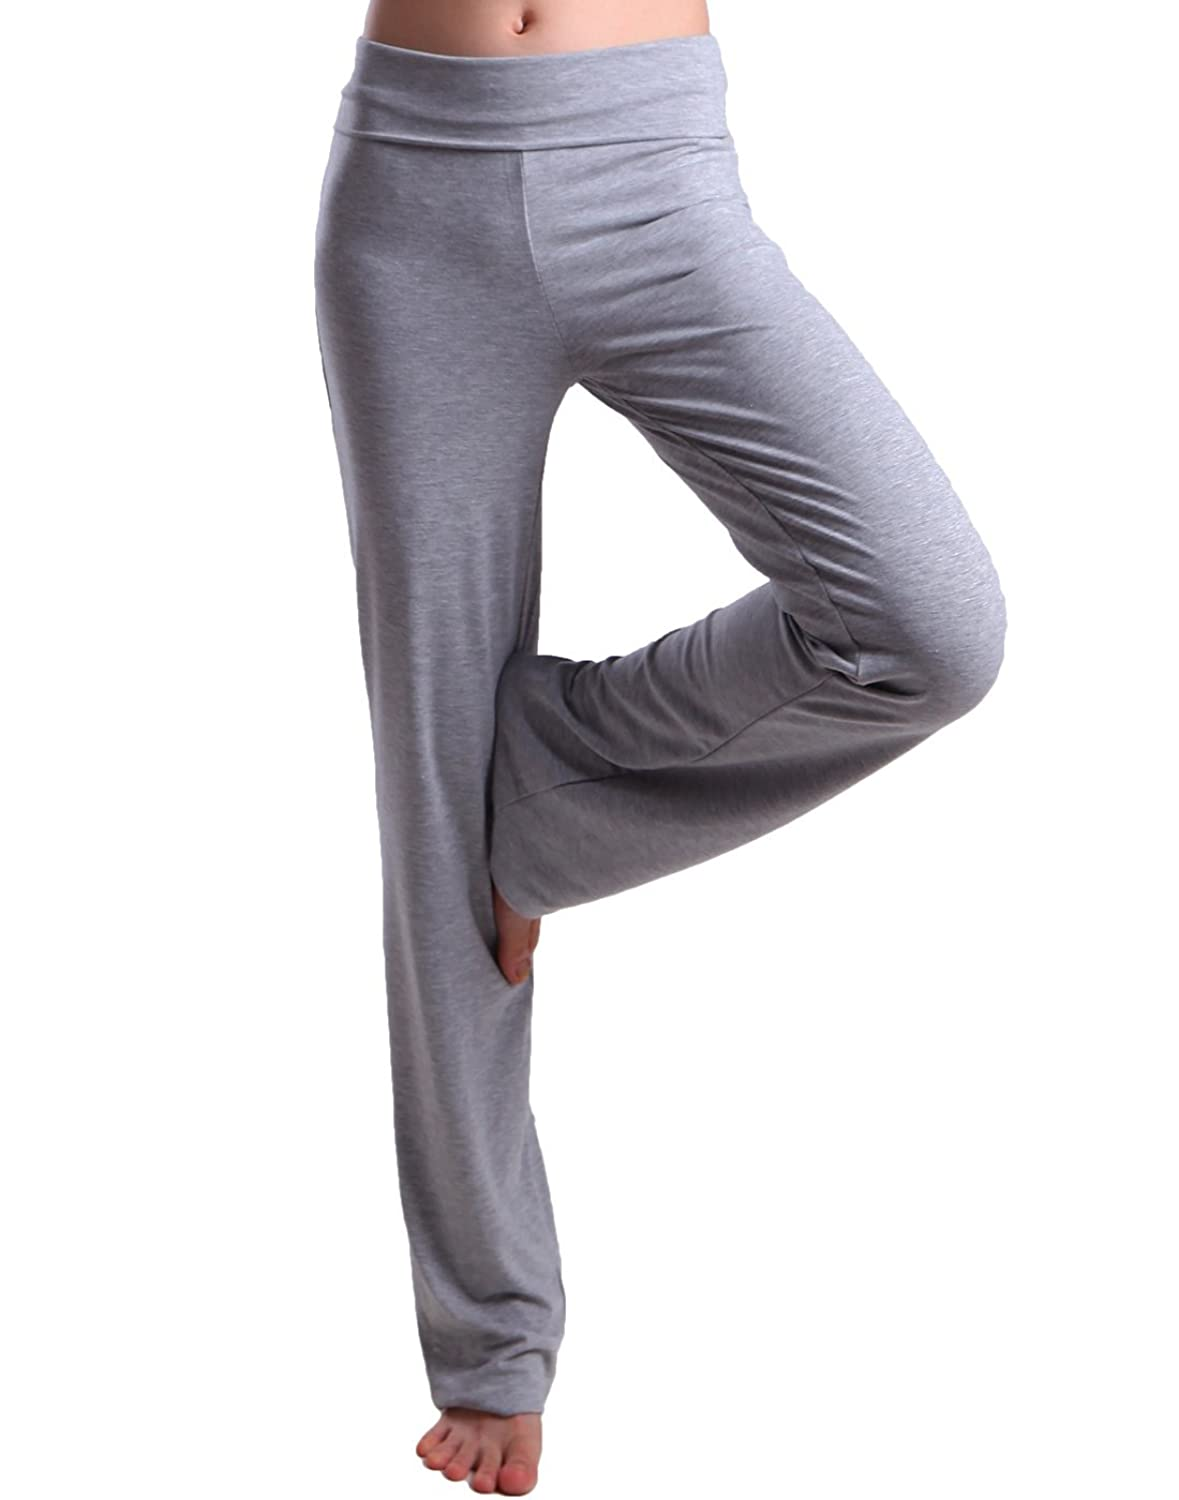 74f8a41482 This pair of yoga pants can easily go from your morning workout session to  brunch with girlfriends! With these pants it\'s all about flare silhouette  and ...